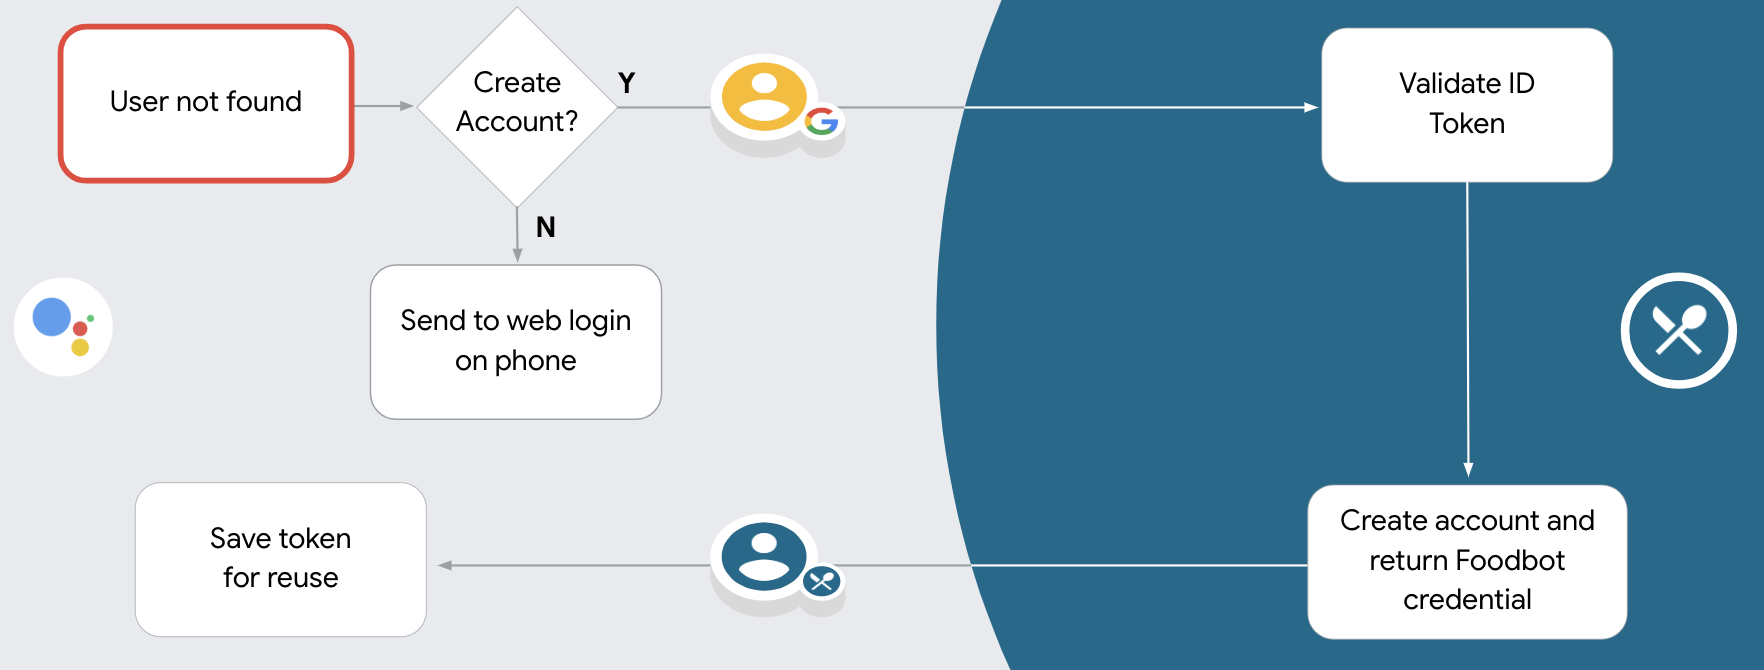 If you allow account creation via voice and can't find a match for             the Google profile in your authentication system, you need to             validate the ID token received from Google. You can then create a             user based on the profile information contained in the ID token.             If you don't allow user account creation via voice, the user is             transferred to a browser where they can load your authorization page             and complete the flow.